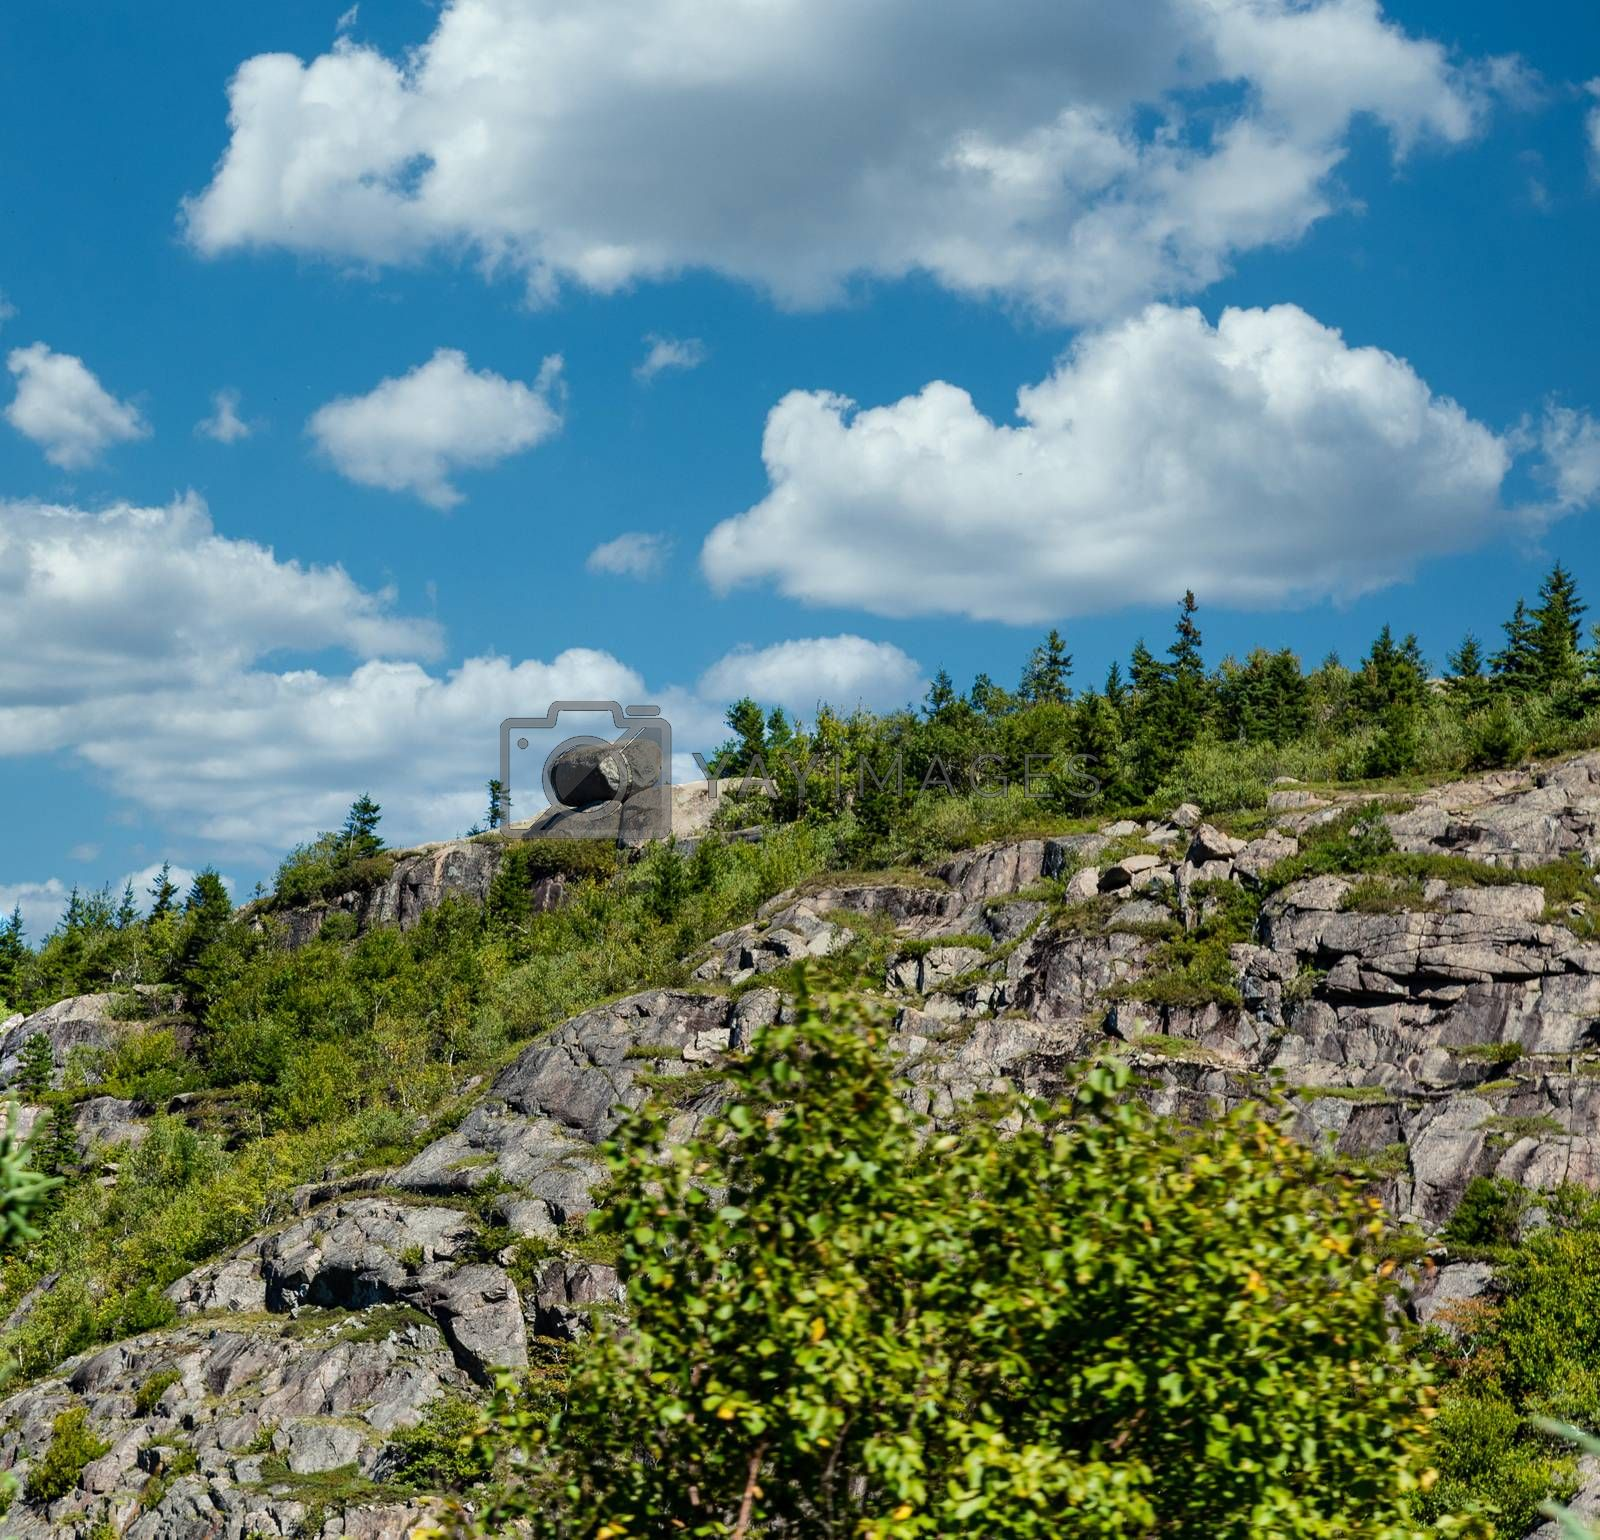 Greenery Over Rocky Hill  in Maine by dbvirago